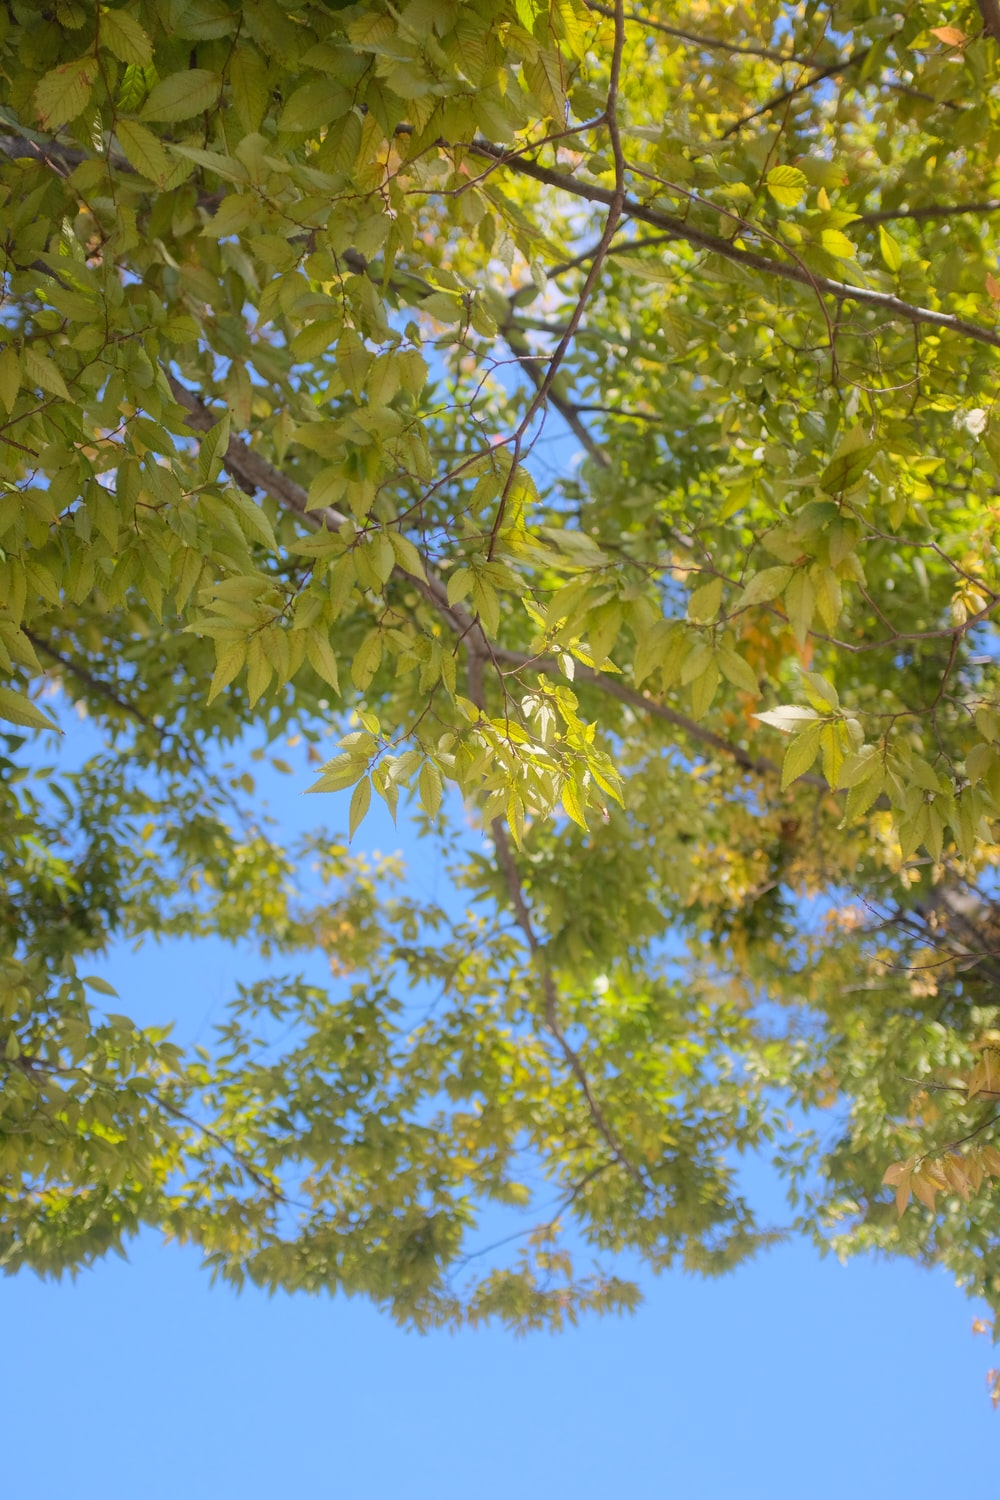 green leaves on tree during daytime